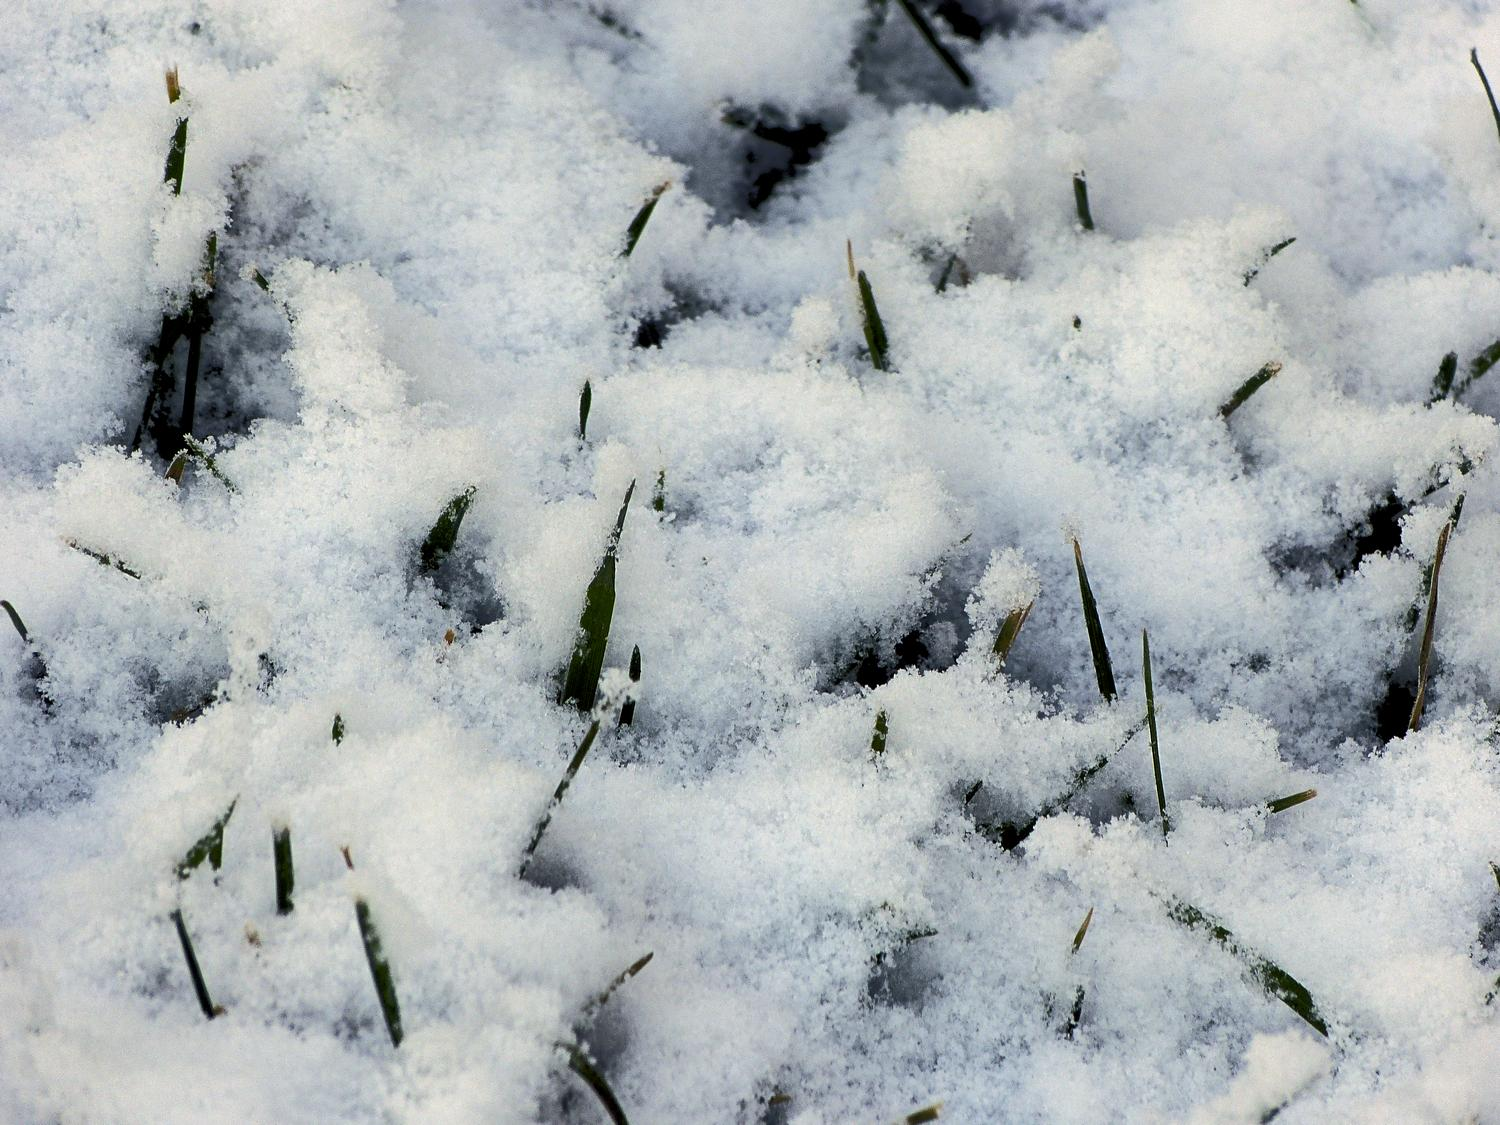 - Grass through the snow on a cool winter's morning <br>--- Click to see ORIGINAL --- - -  Panasonic DMC-FZ150 - post processing - Tony Karp, design, art, photography, techno-impressionist, techno-impressionism, aerial photography , drone , drones , dji , mavic pro , video , 3D printing - Books -